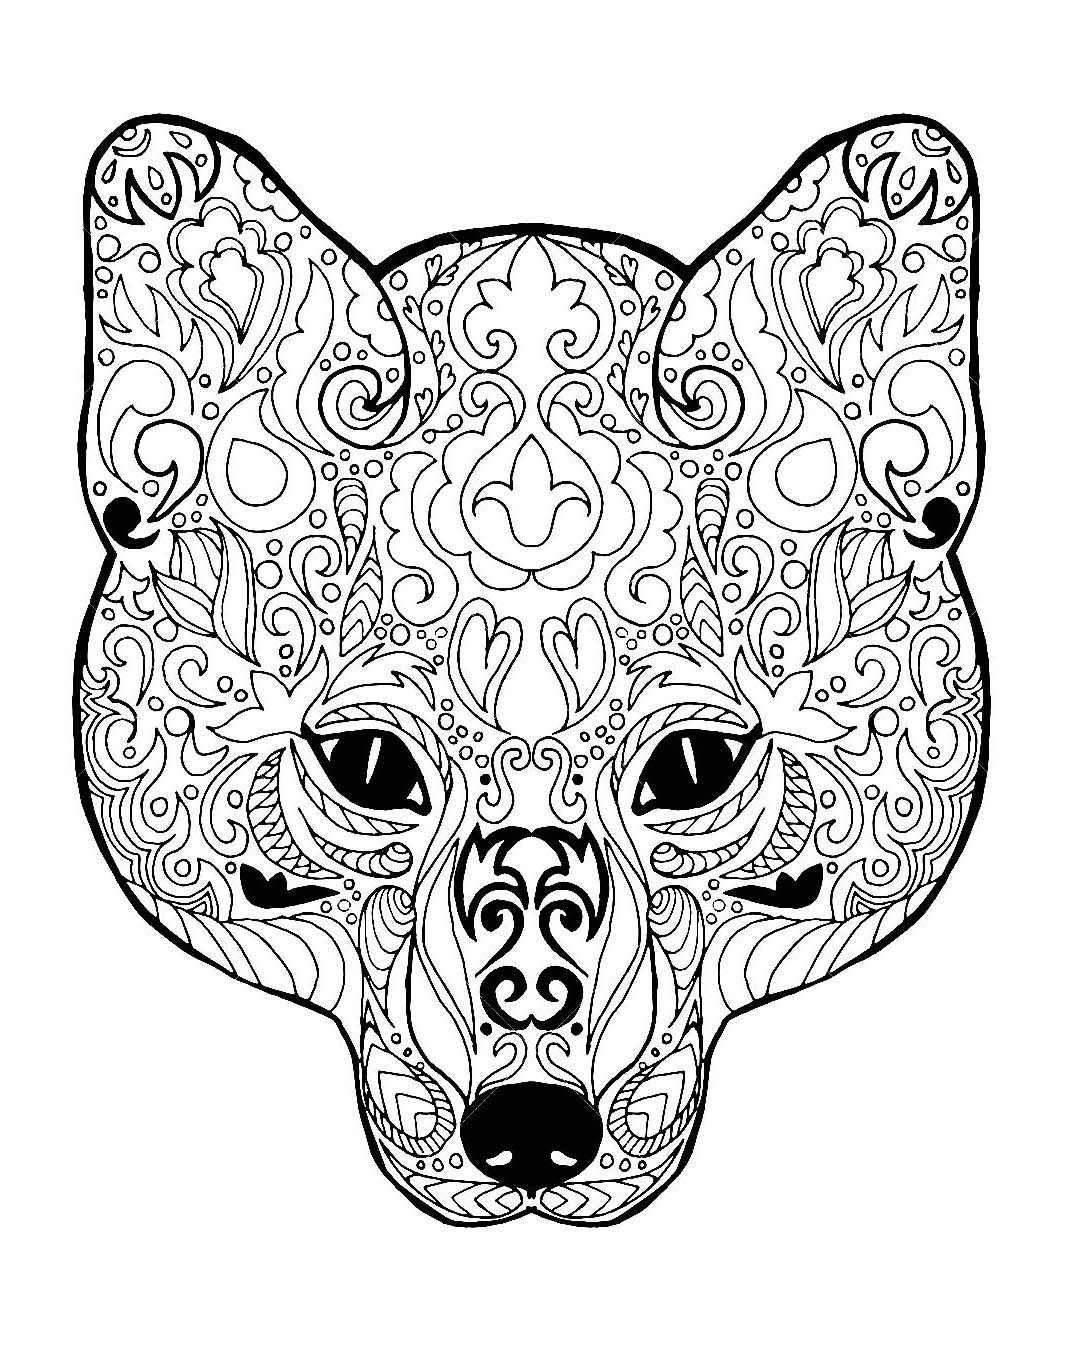 Fox for children - Fox Kids Coloring Pages